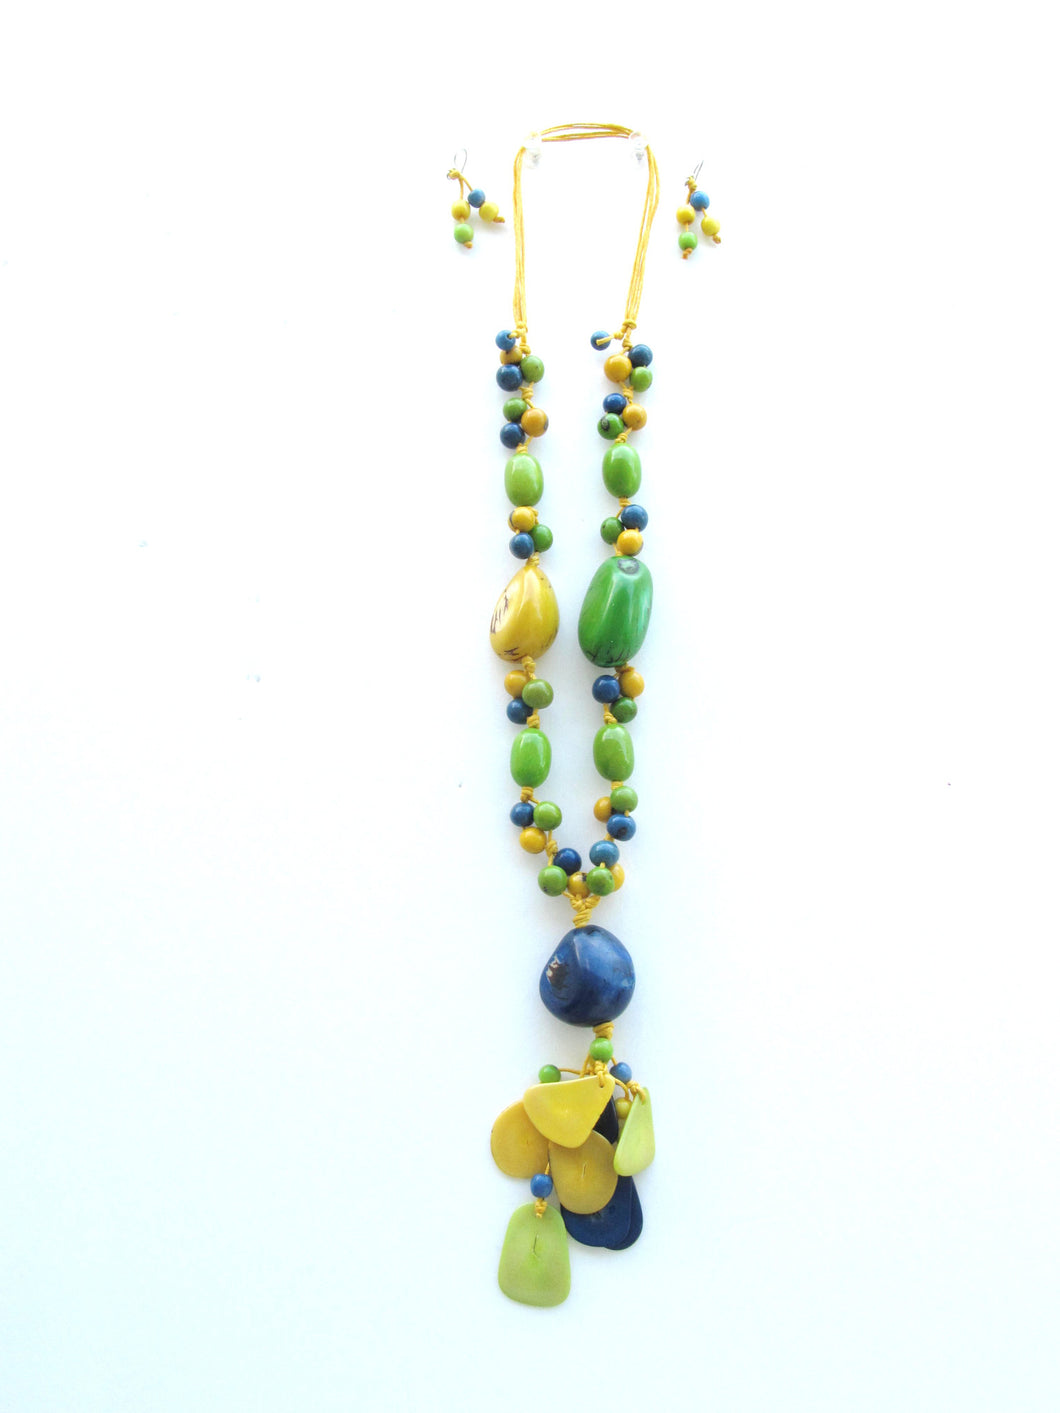 Rain Forest Necklace - Funkecomedina